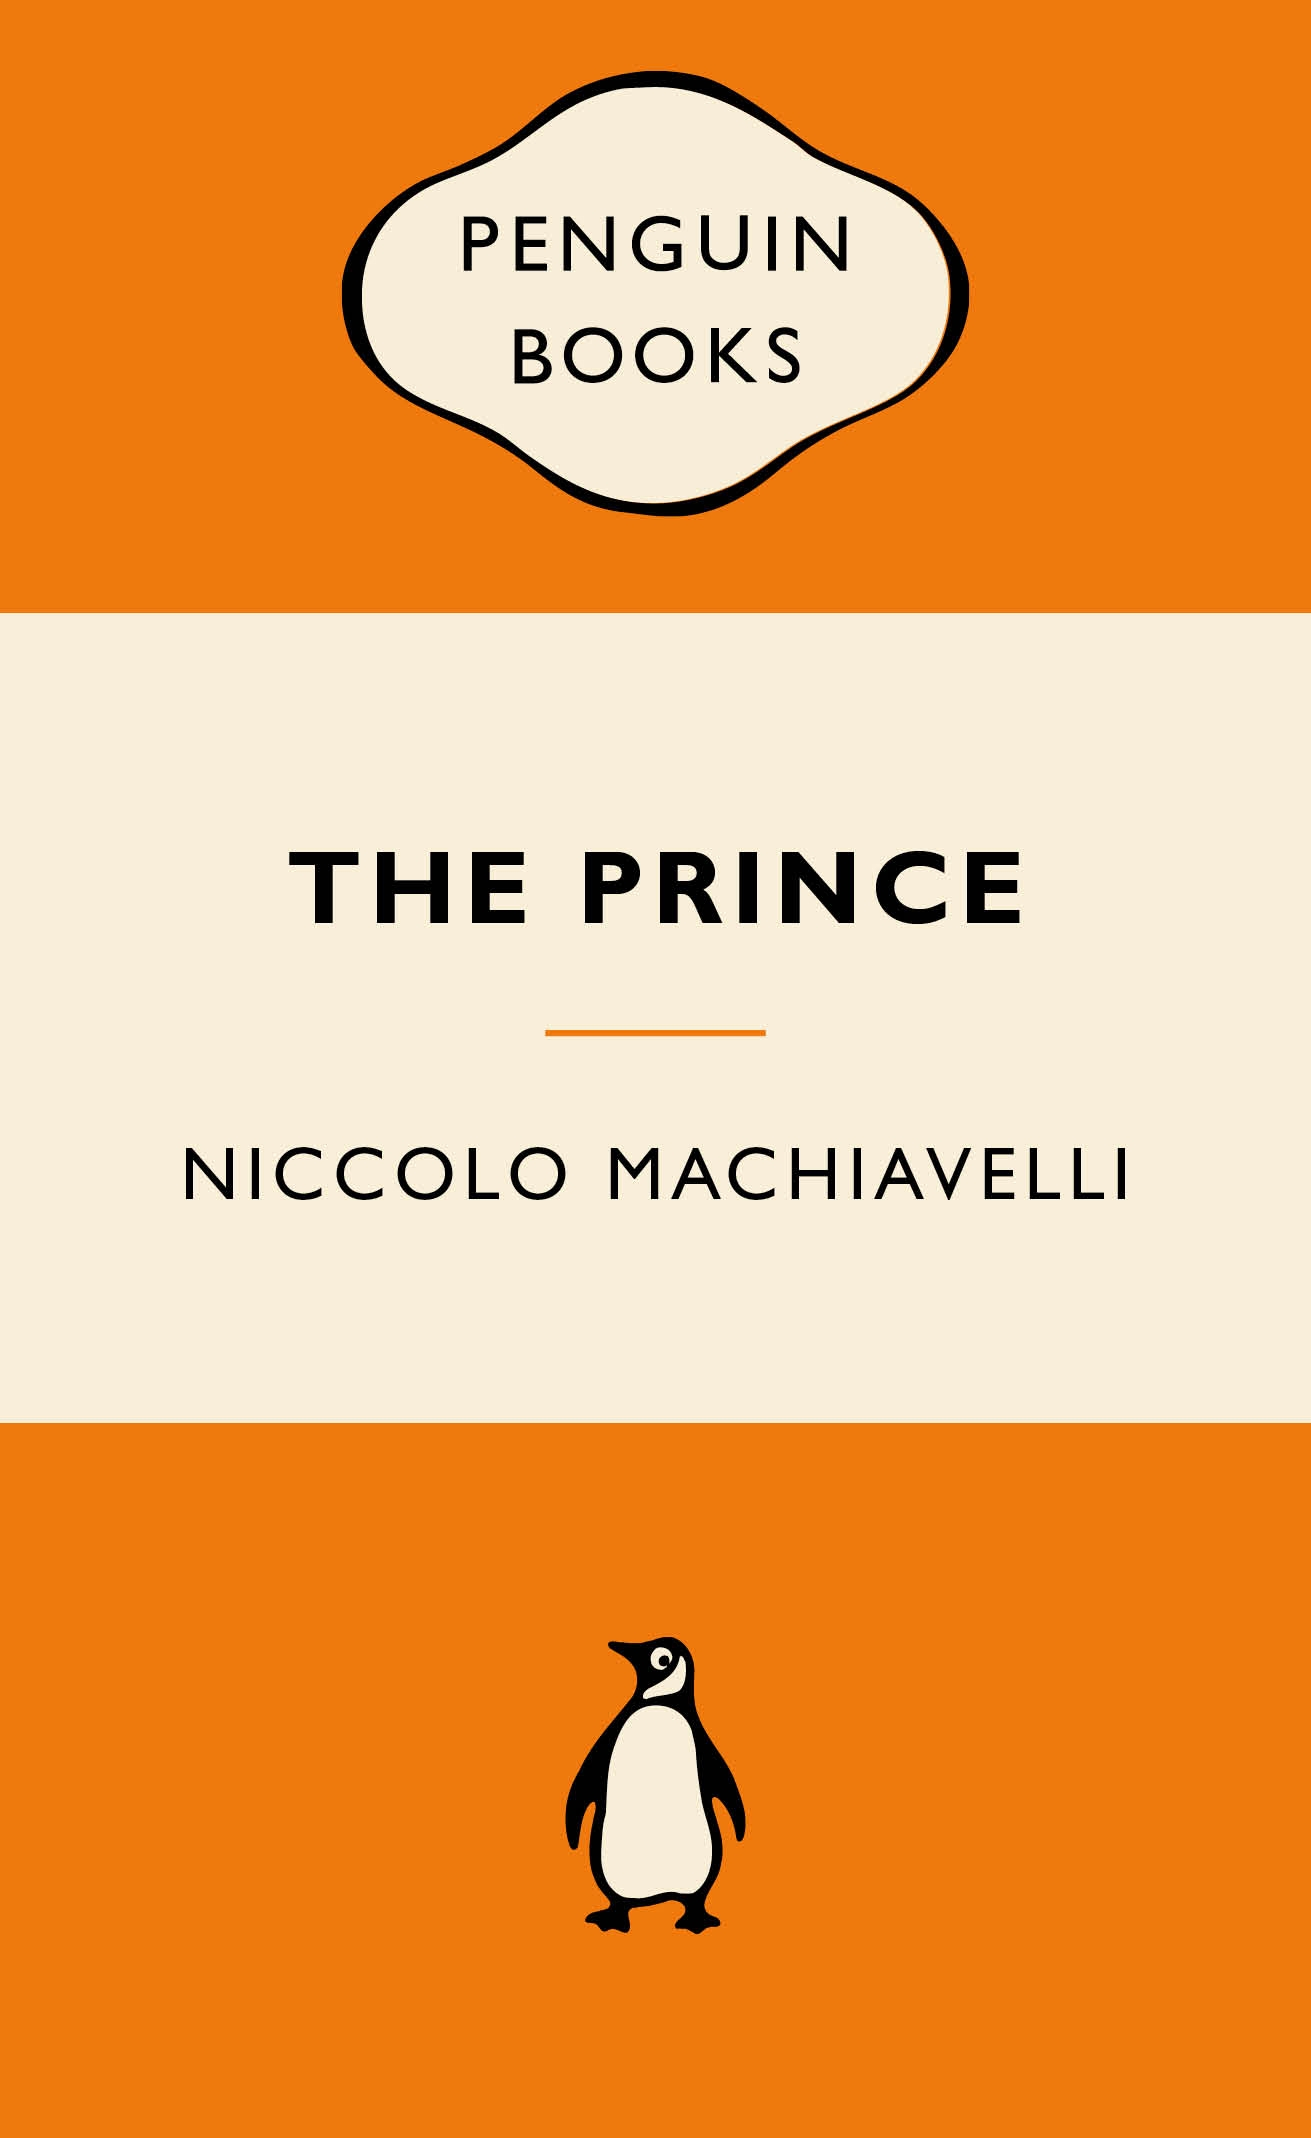 the importance of the works of niccolo machiavelli Leaders, head of states, dominance - political ideology in the prince by niccolò machiavelli many of machiavelli's political works put leaders first and stressed the importance of having a strong head of state some view the trait of dominance as evil, but when put into context in the time period it was established, this trait.